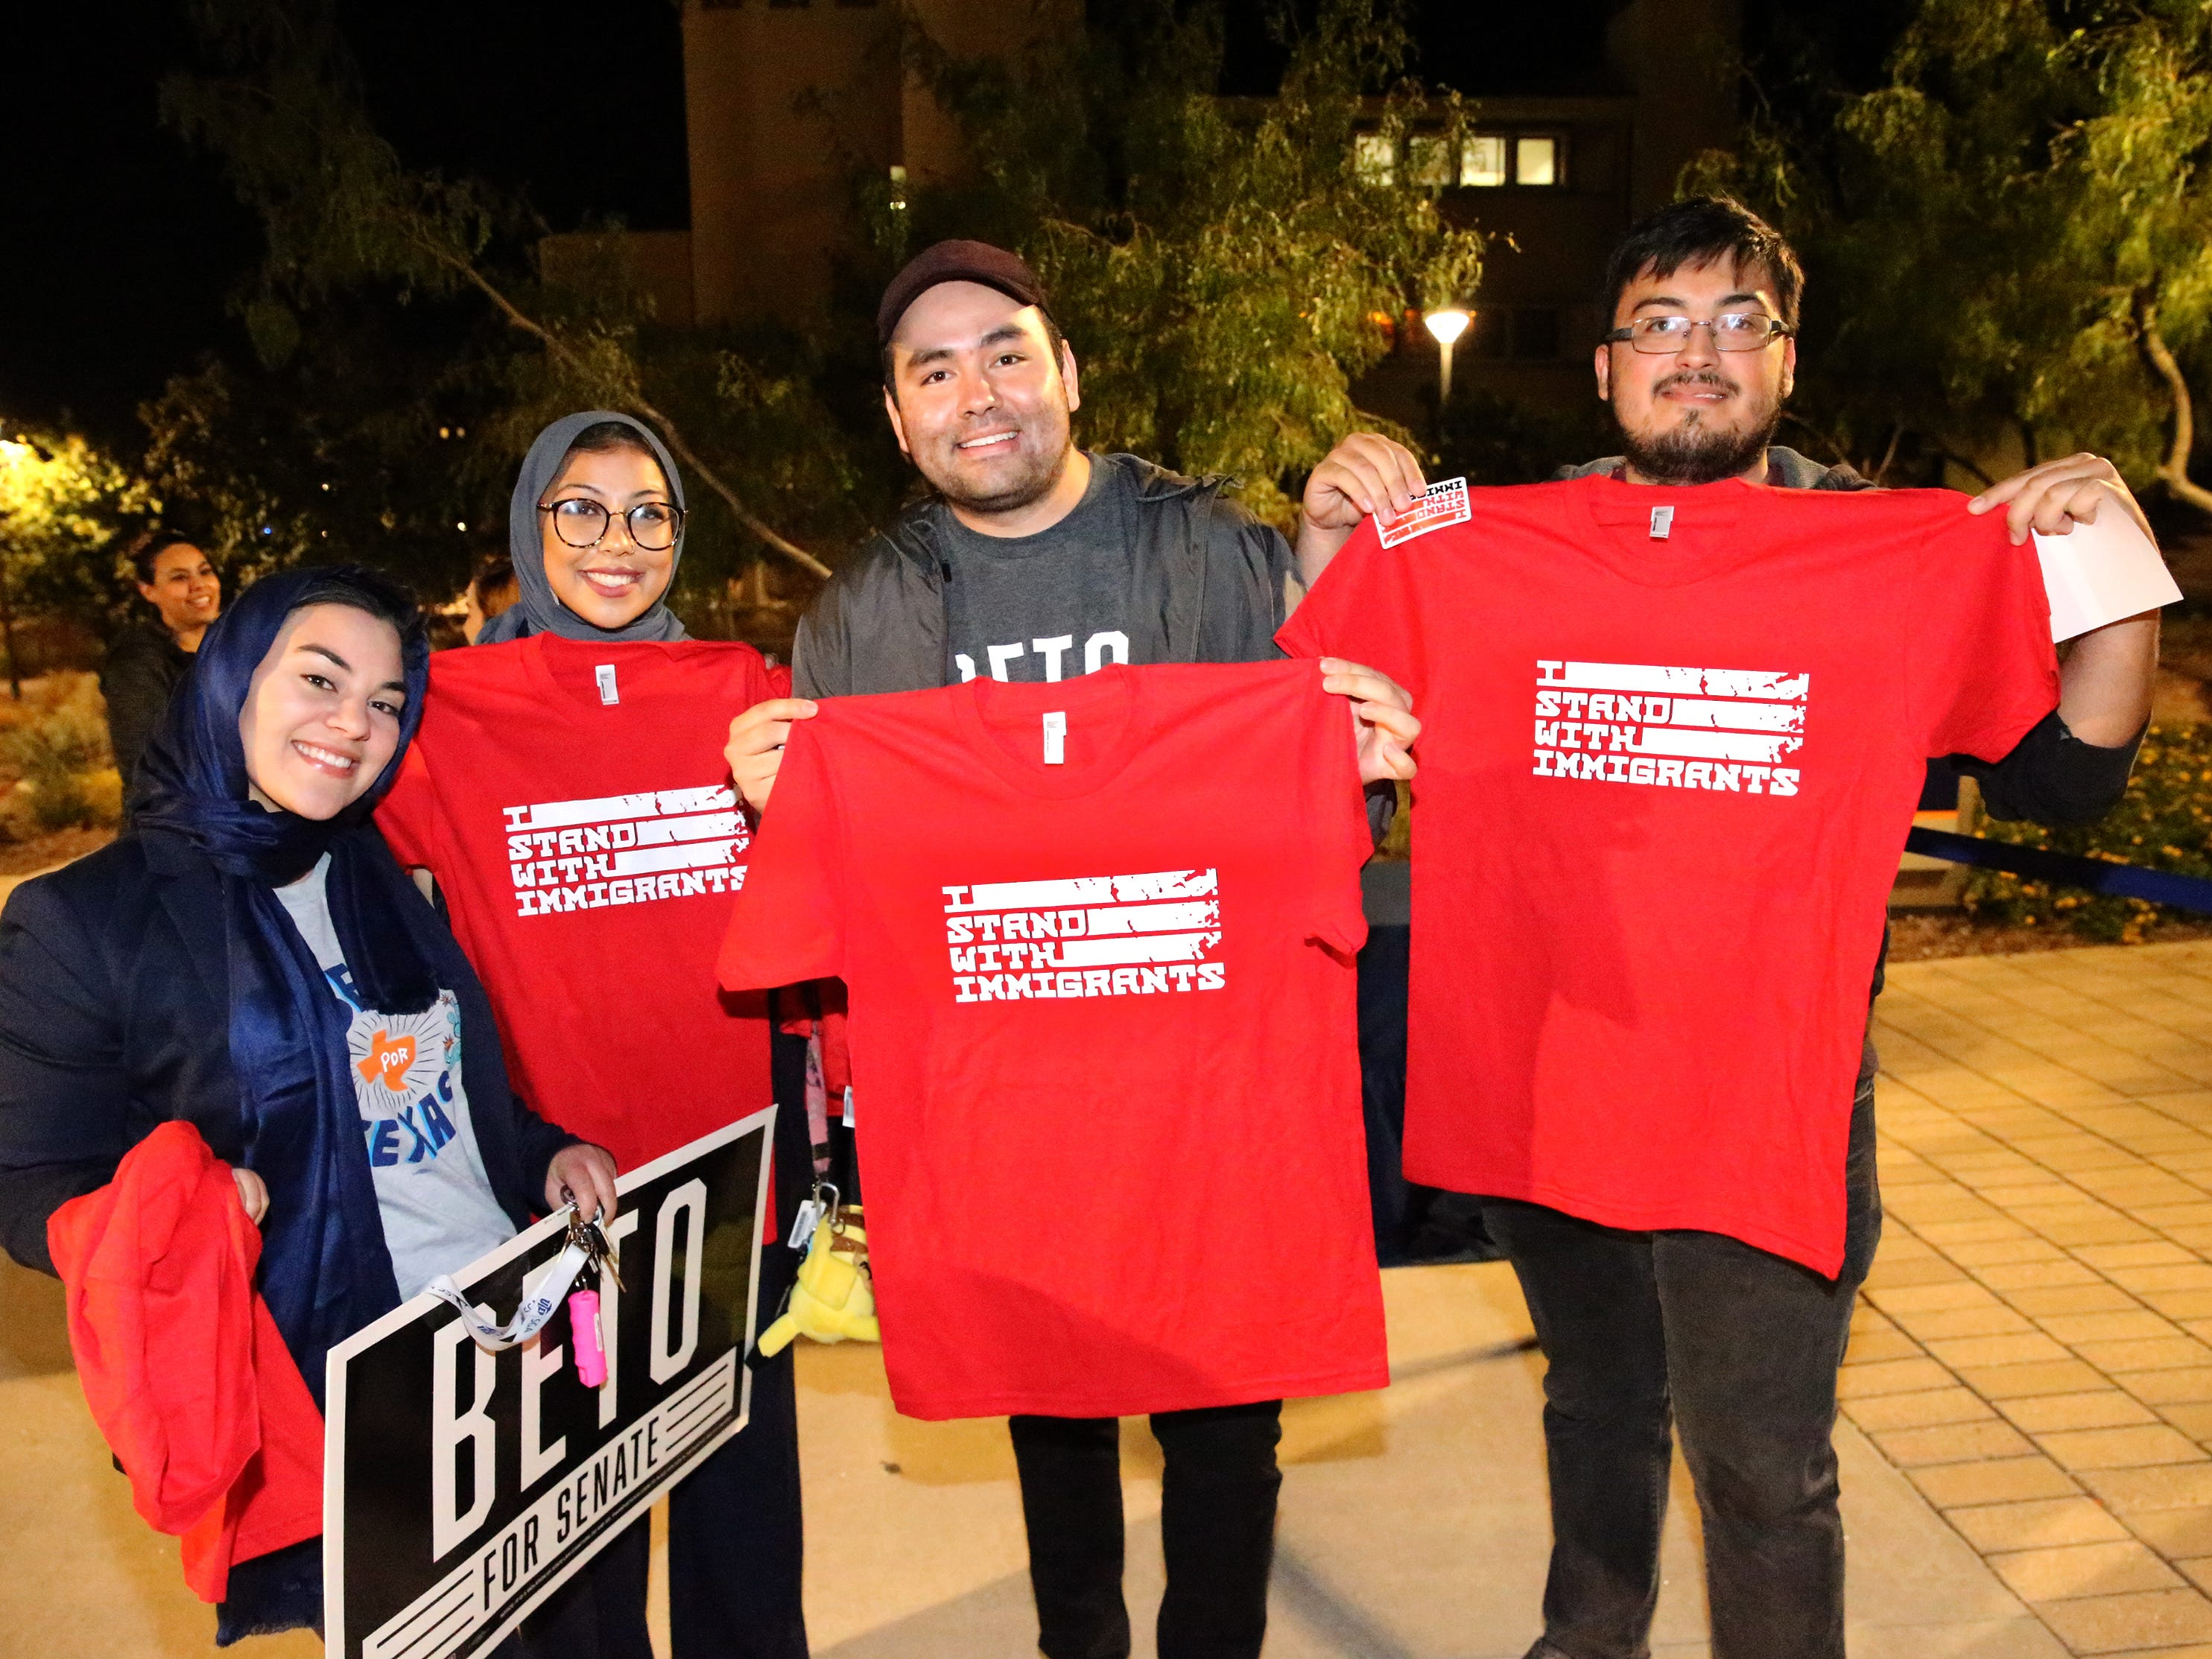 A group of El Pasoans were treated to 'I stand with immigrants' T-shirts outside Magoffin Auditorium Monday night.